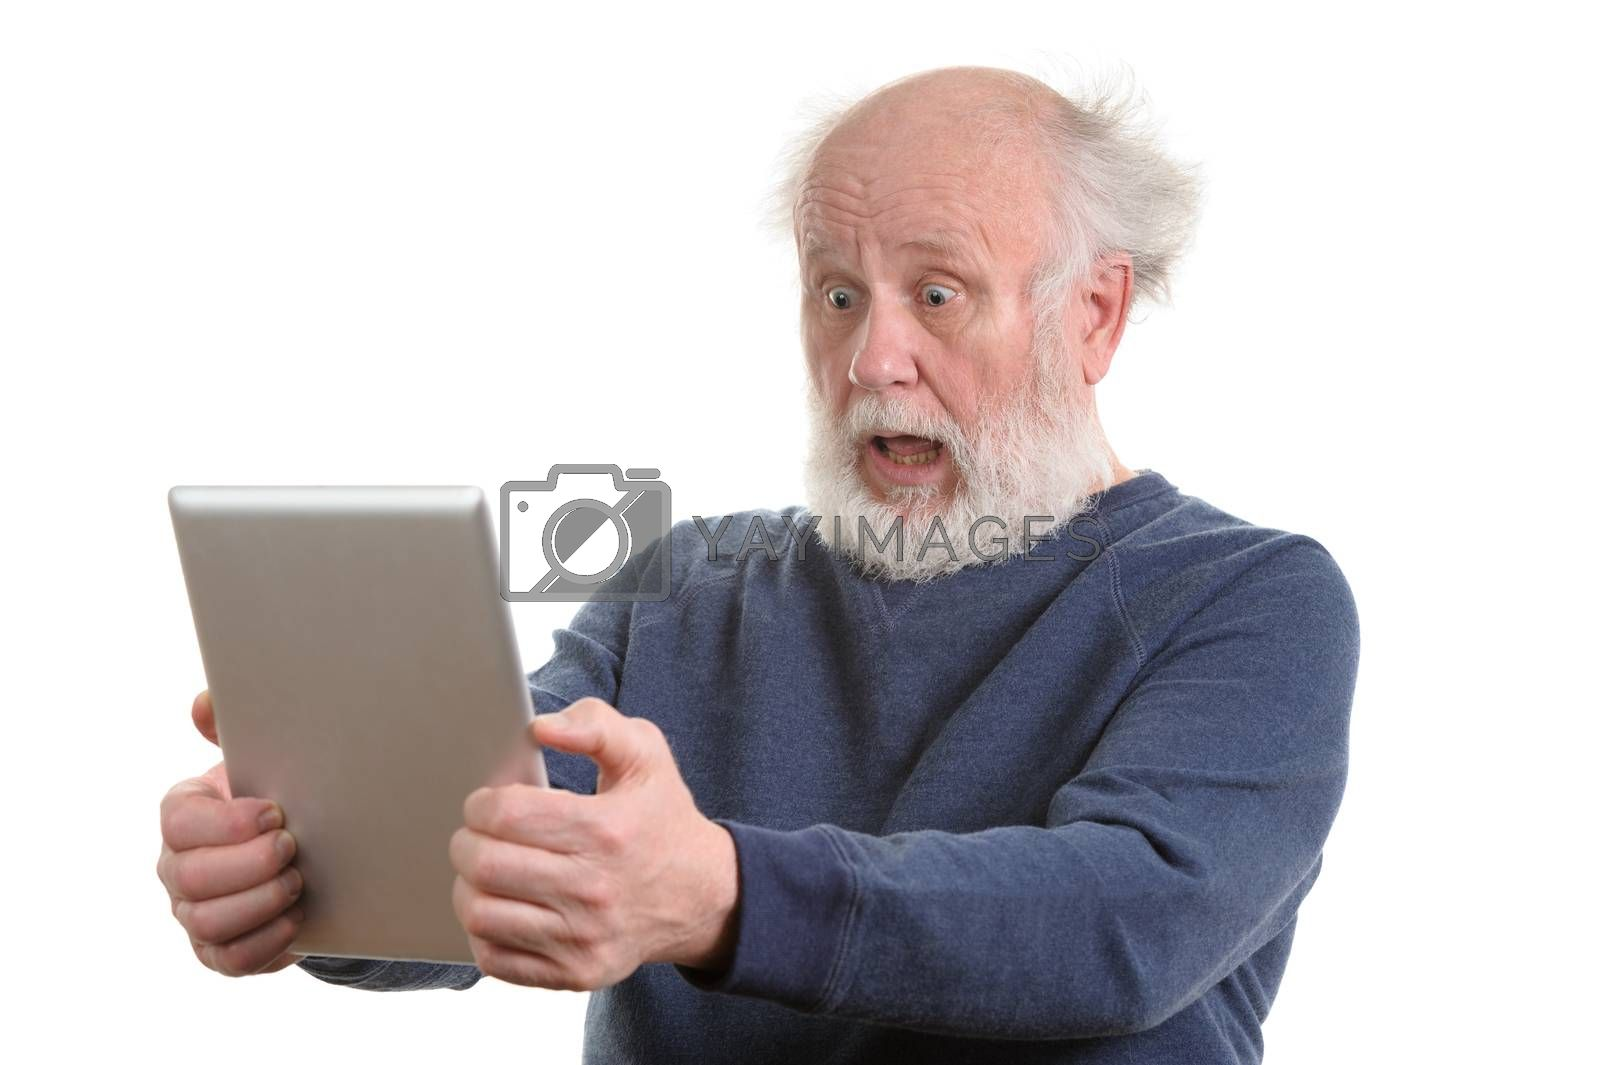 Funny shocked astonished old man using tablet computer, isolated on white